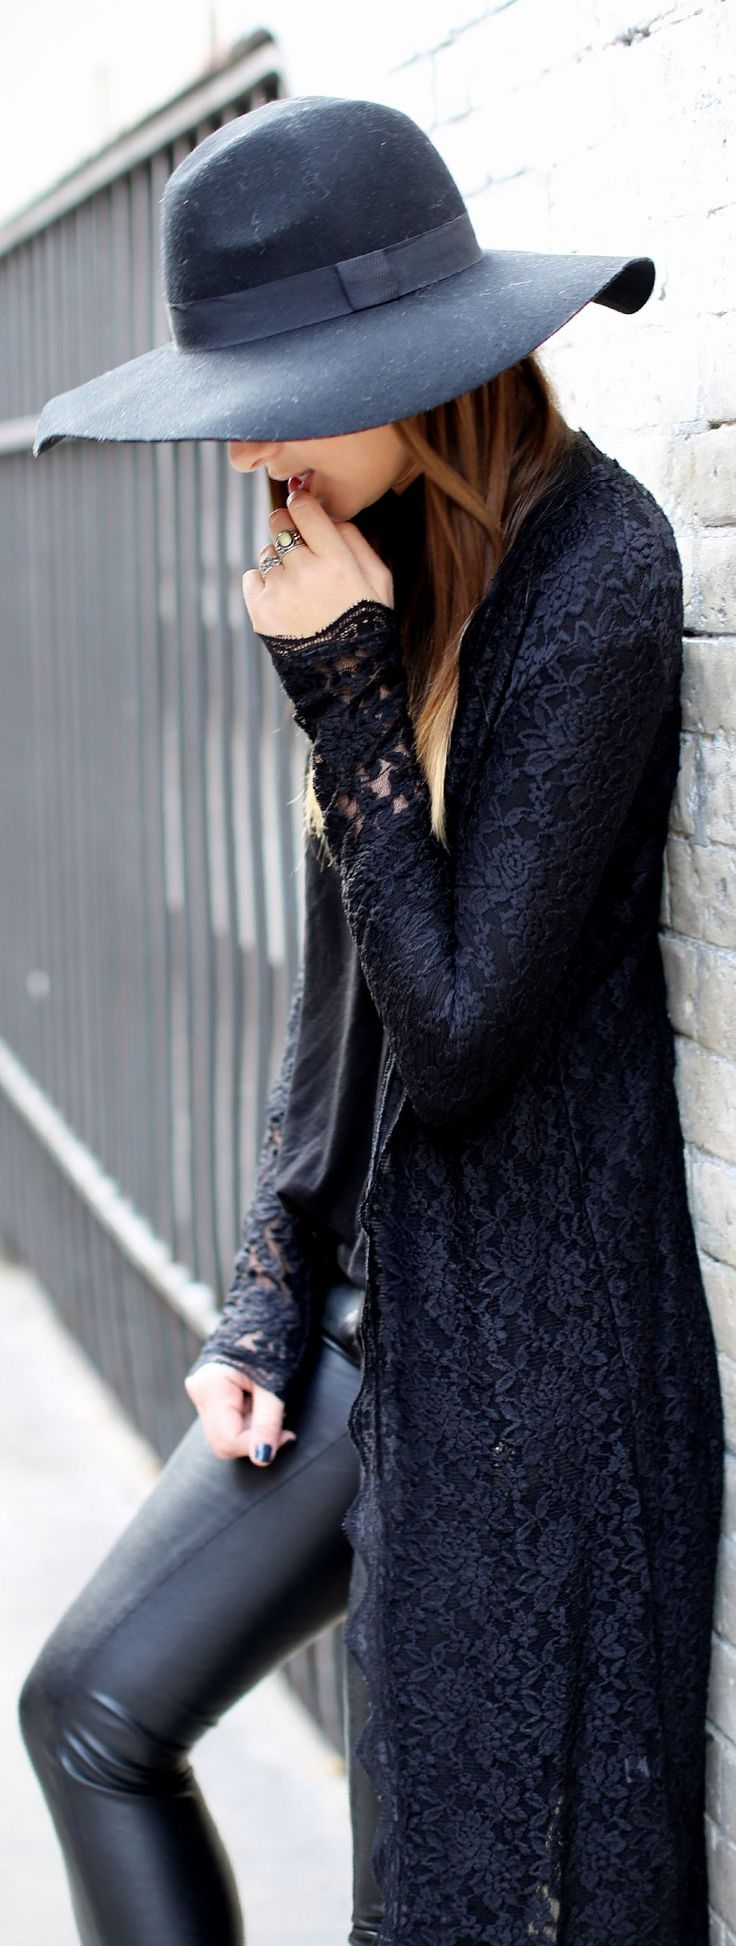 Leather pants lace coat with black hat